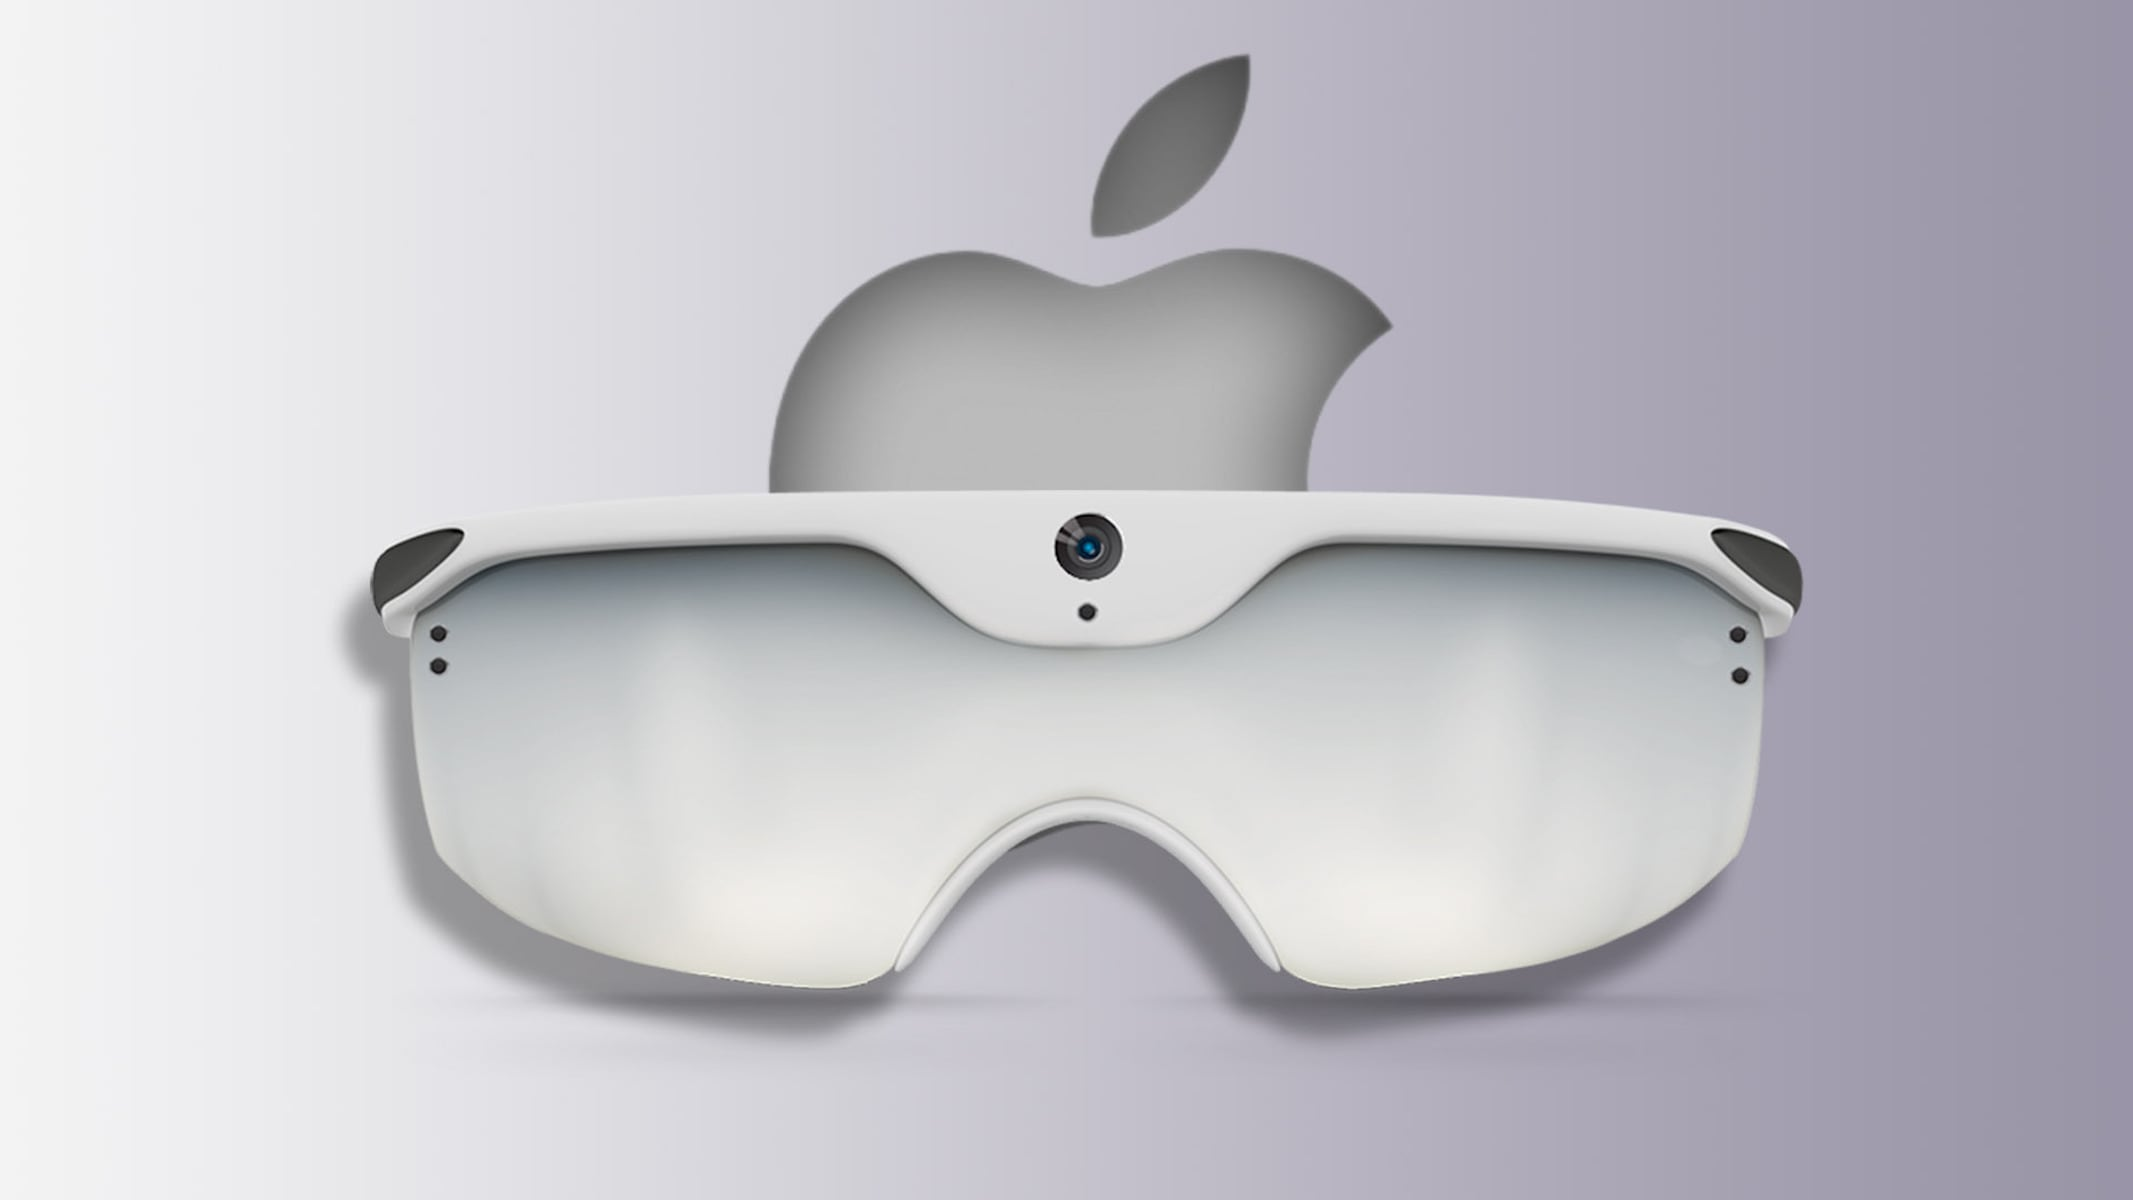 Apple Glasses–everything we know so far